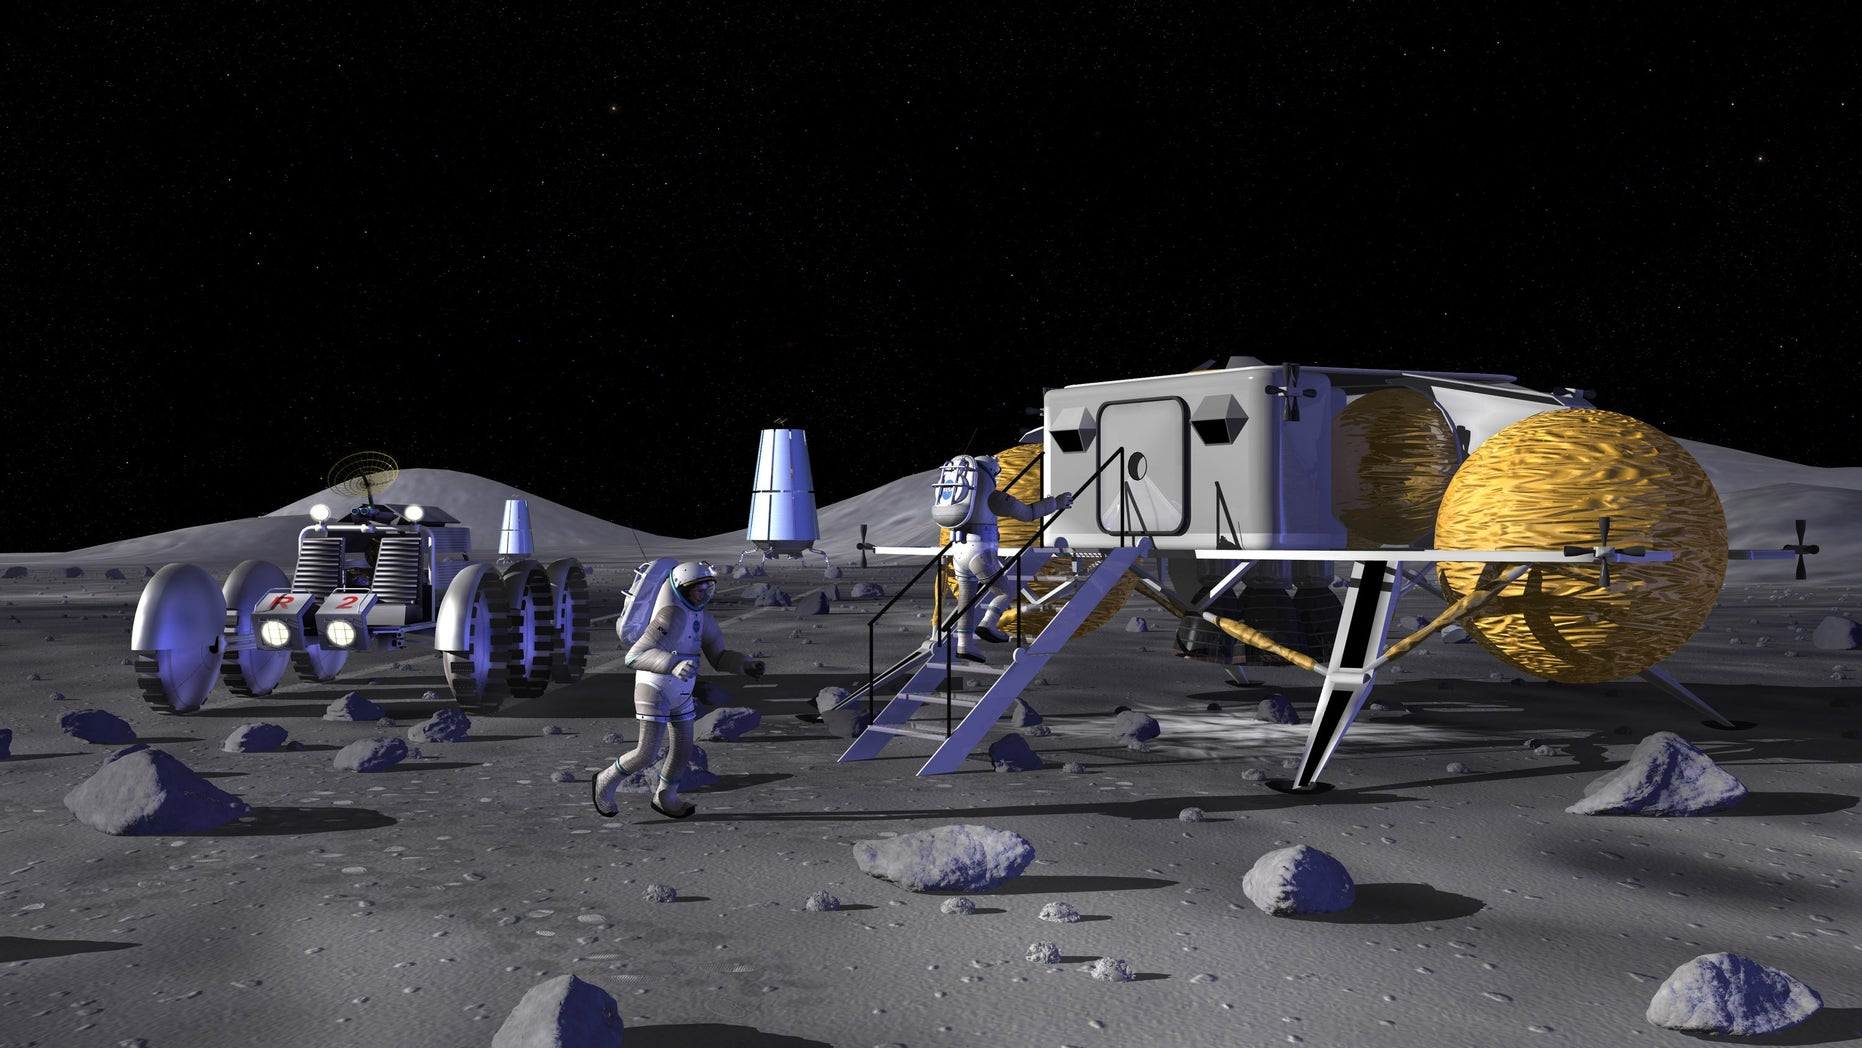 A NASA artist's rendering of possible activities during future space exploration missions at a manned lunar base.